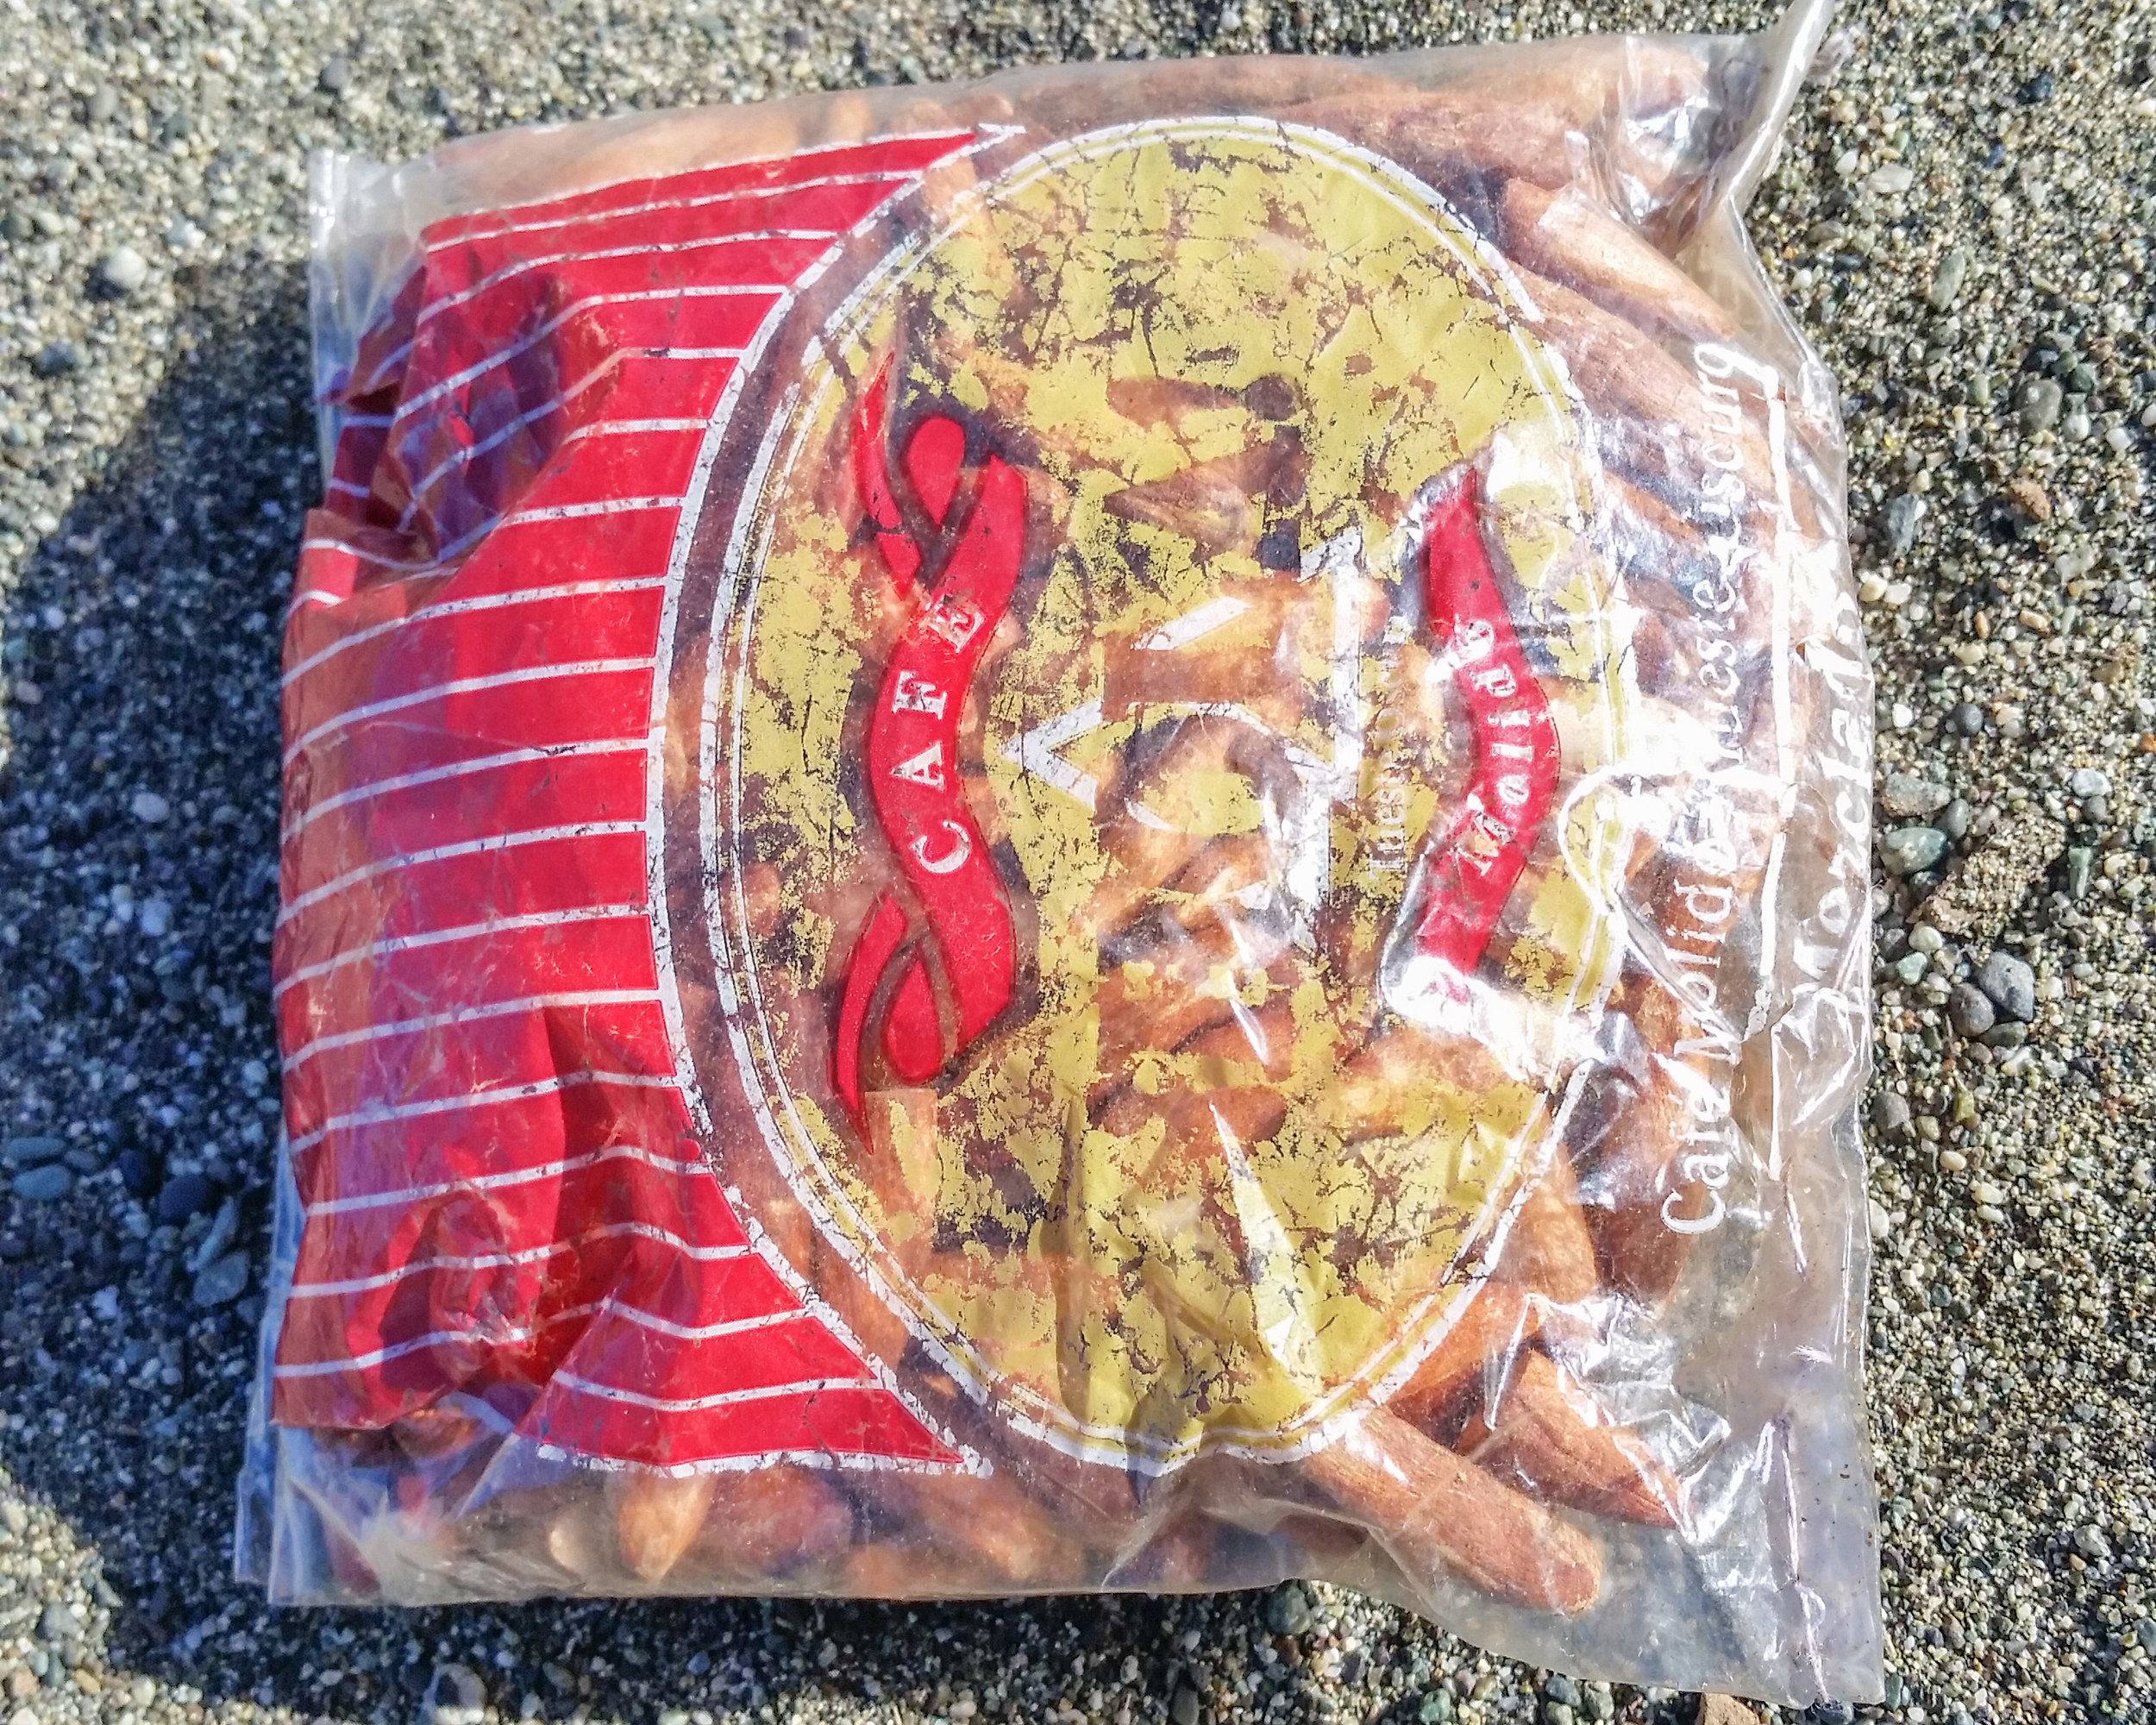 Almonds stuffed into an old coffee bag, sewed shut and sold in Guantanamo